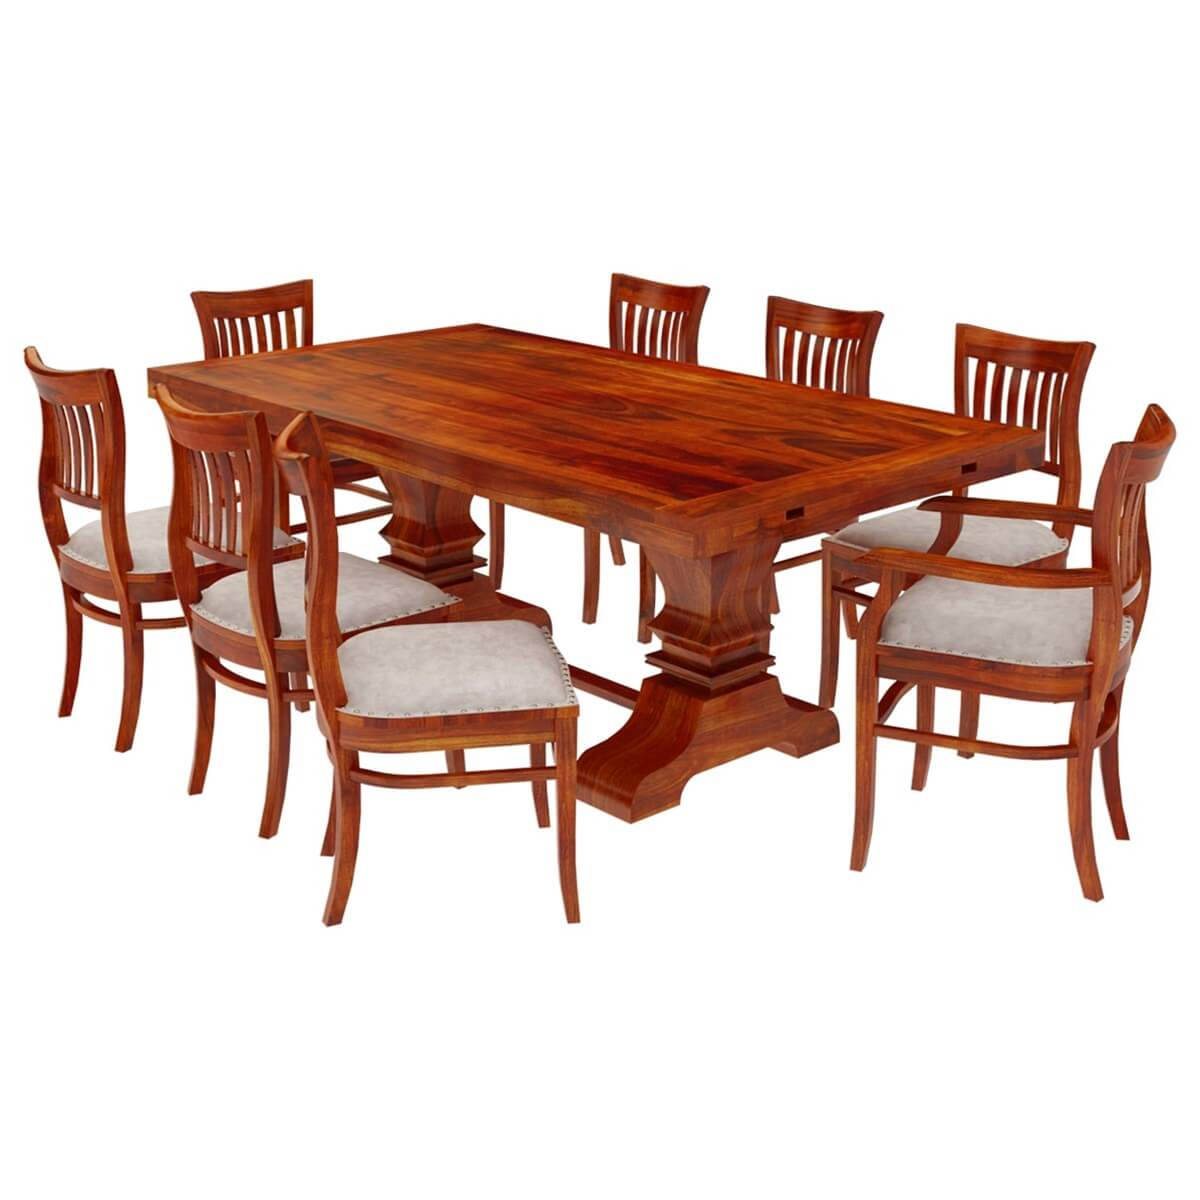 chantilly chic solid wood extendable dining table and chairs set. Black Bedroom Furniture Sets. Home Design Ideas